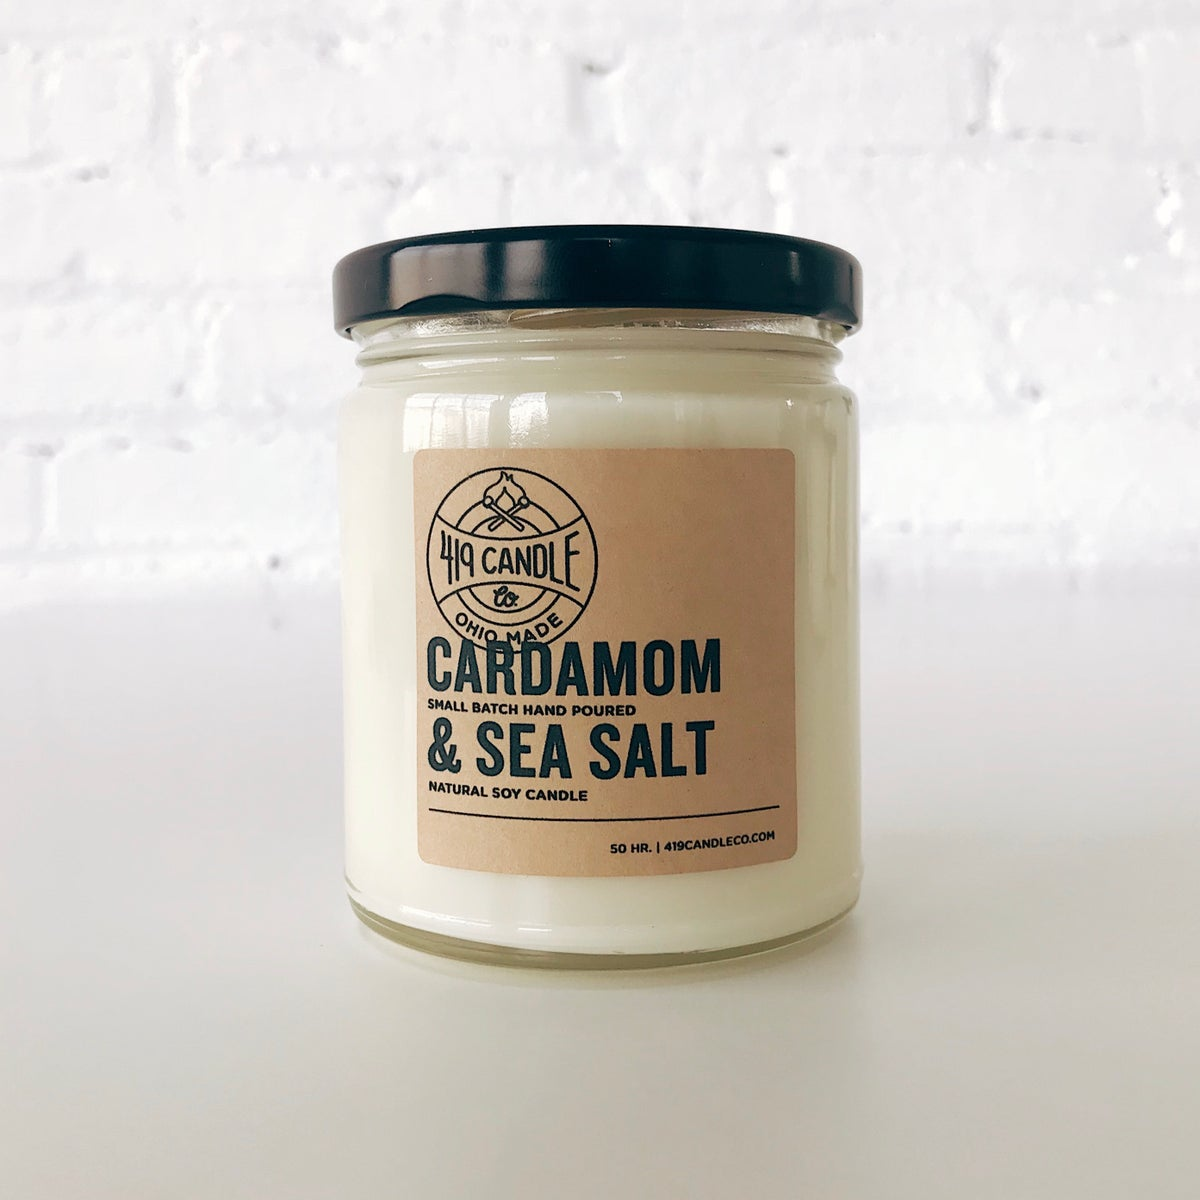 Image of Cardamom & Sea Salt